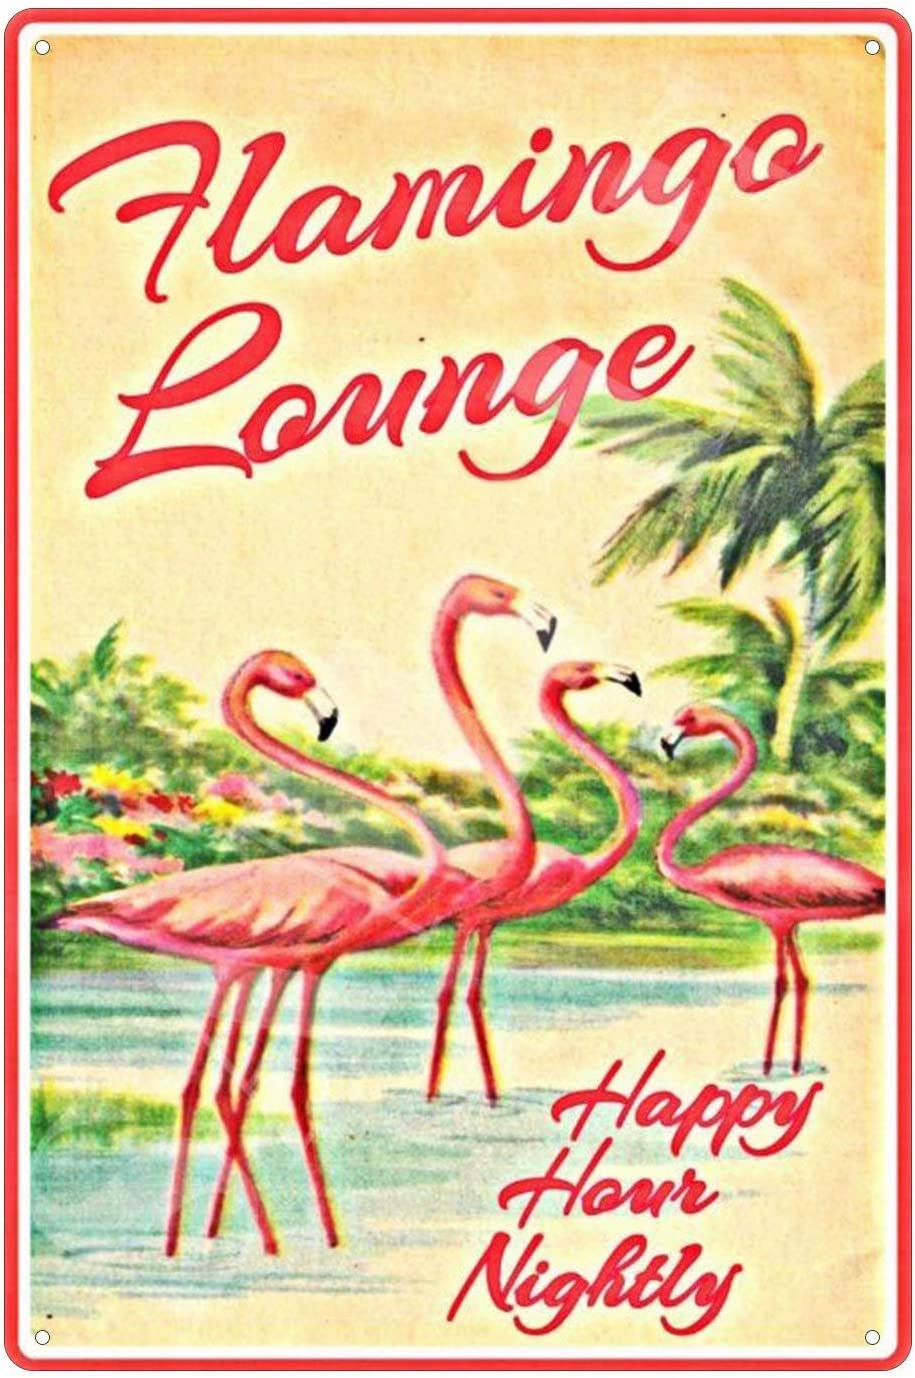 Tin Sign Wall Decor Metal Signs Novelty Pink Flamingo Bar & Grill Retro Vintage Signsative Country Home Gift 12x12 Inches